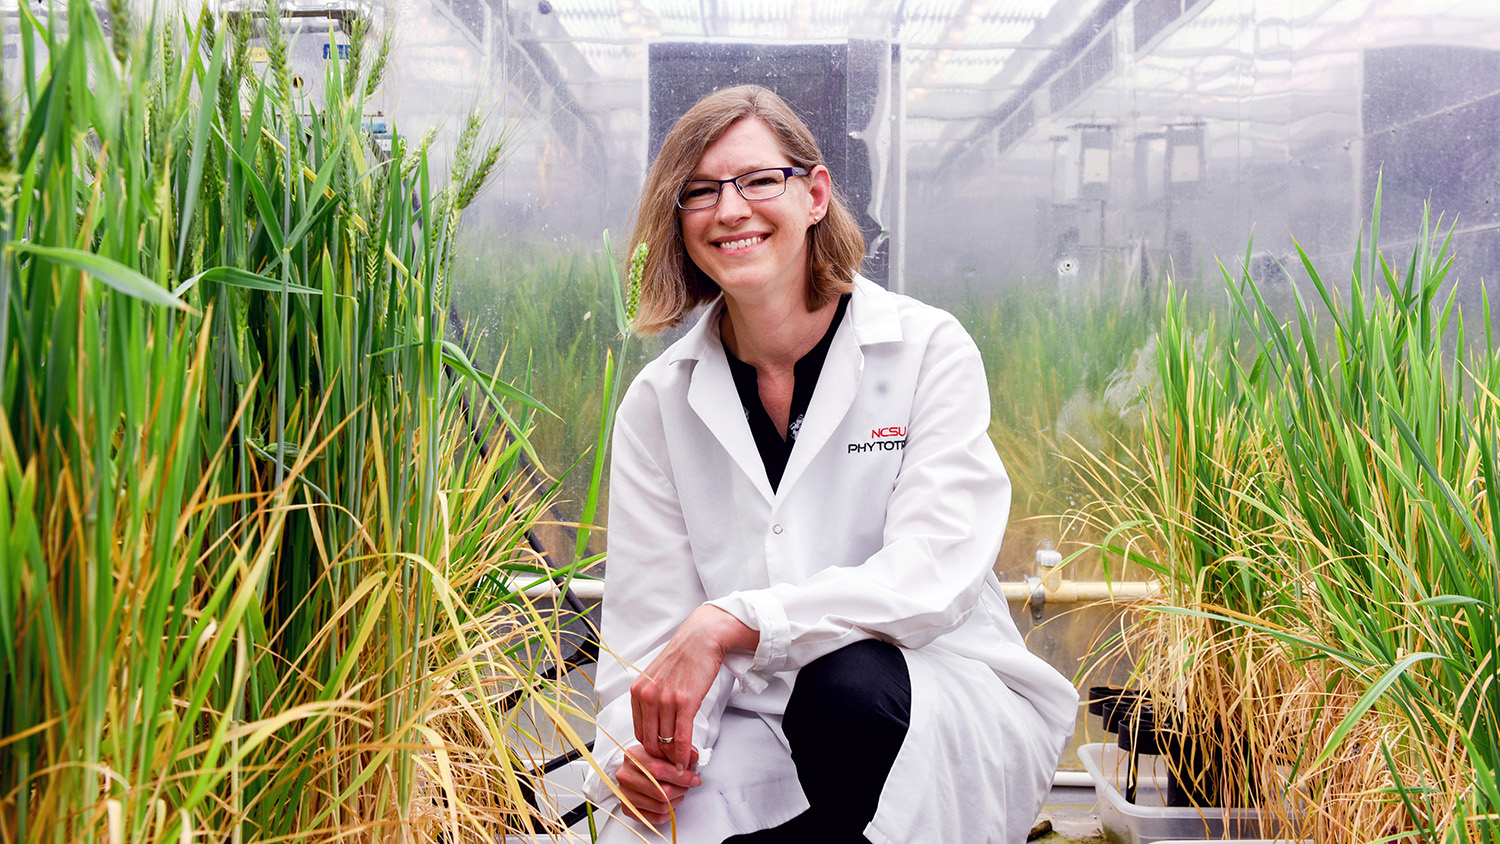 Photo of Amy Grunden in NC State's Phytotron.